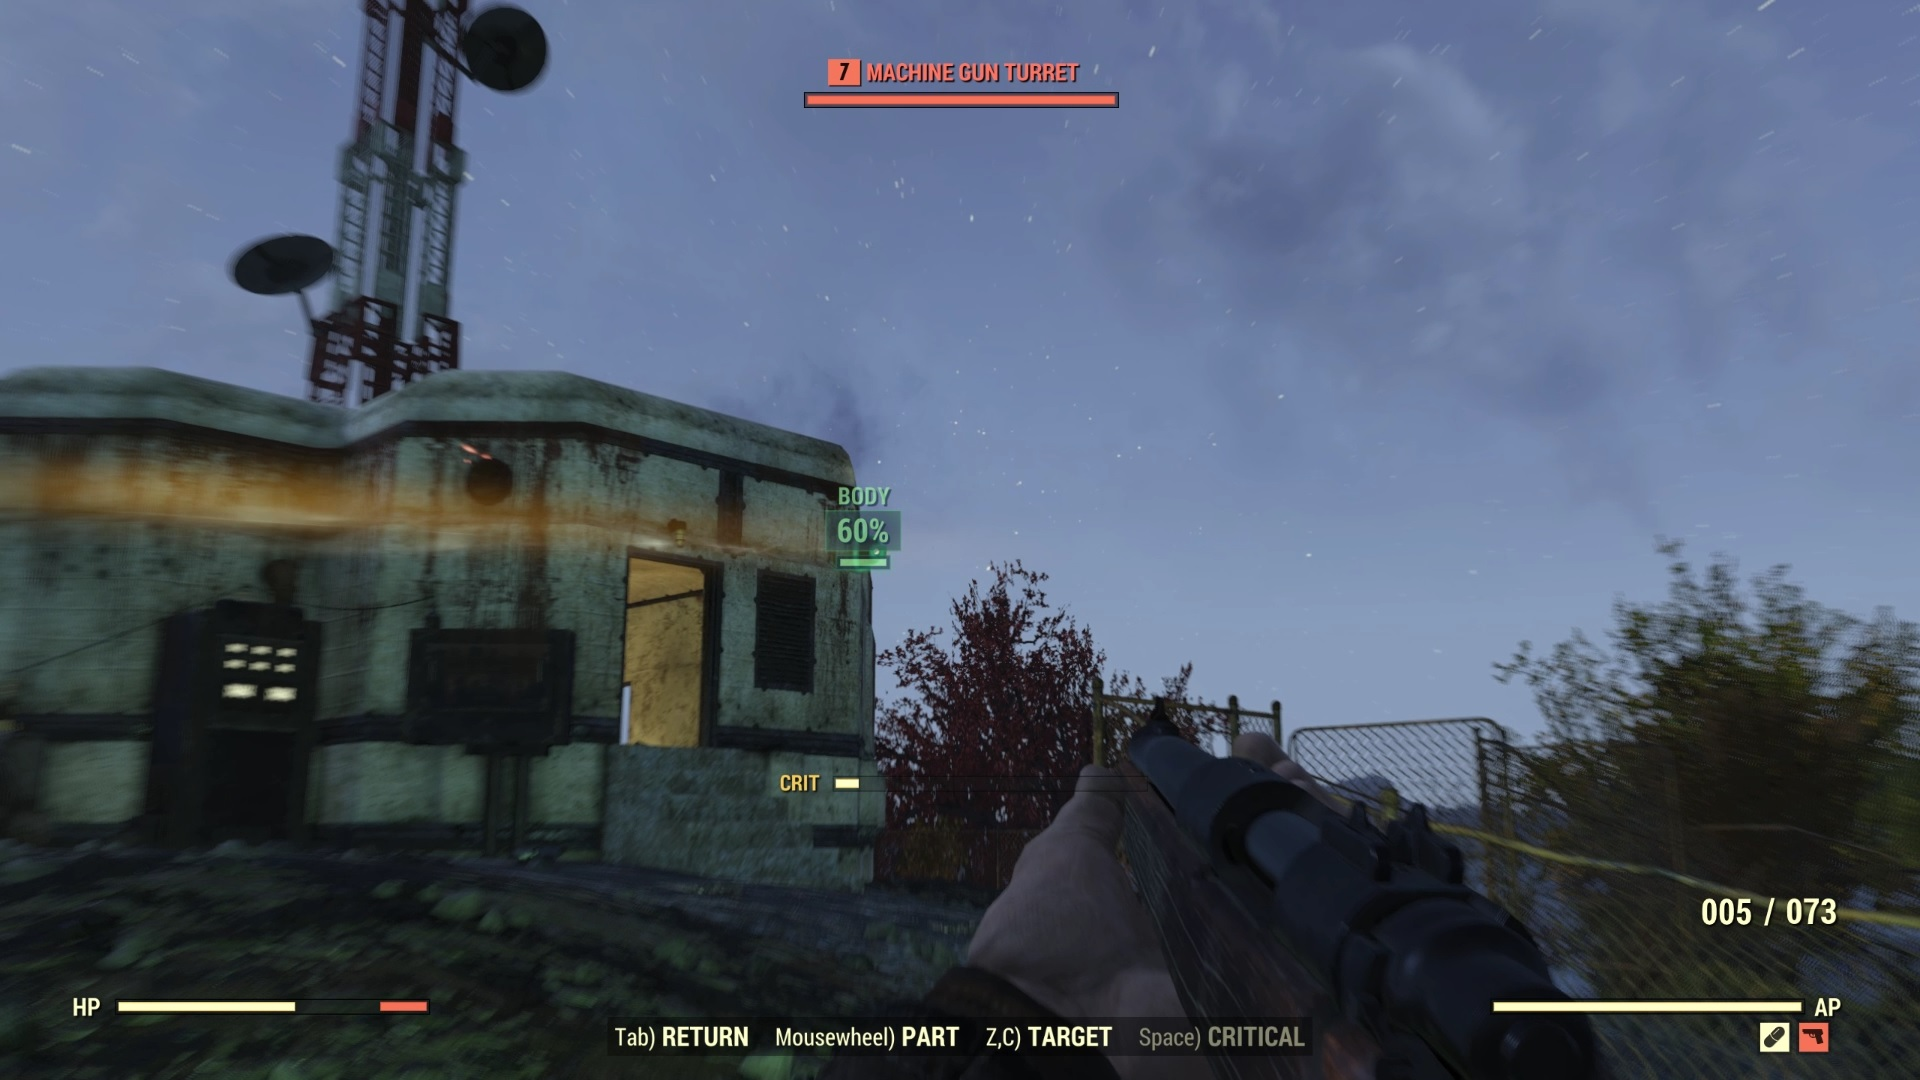 Using VATS against a turret.